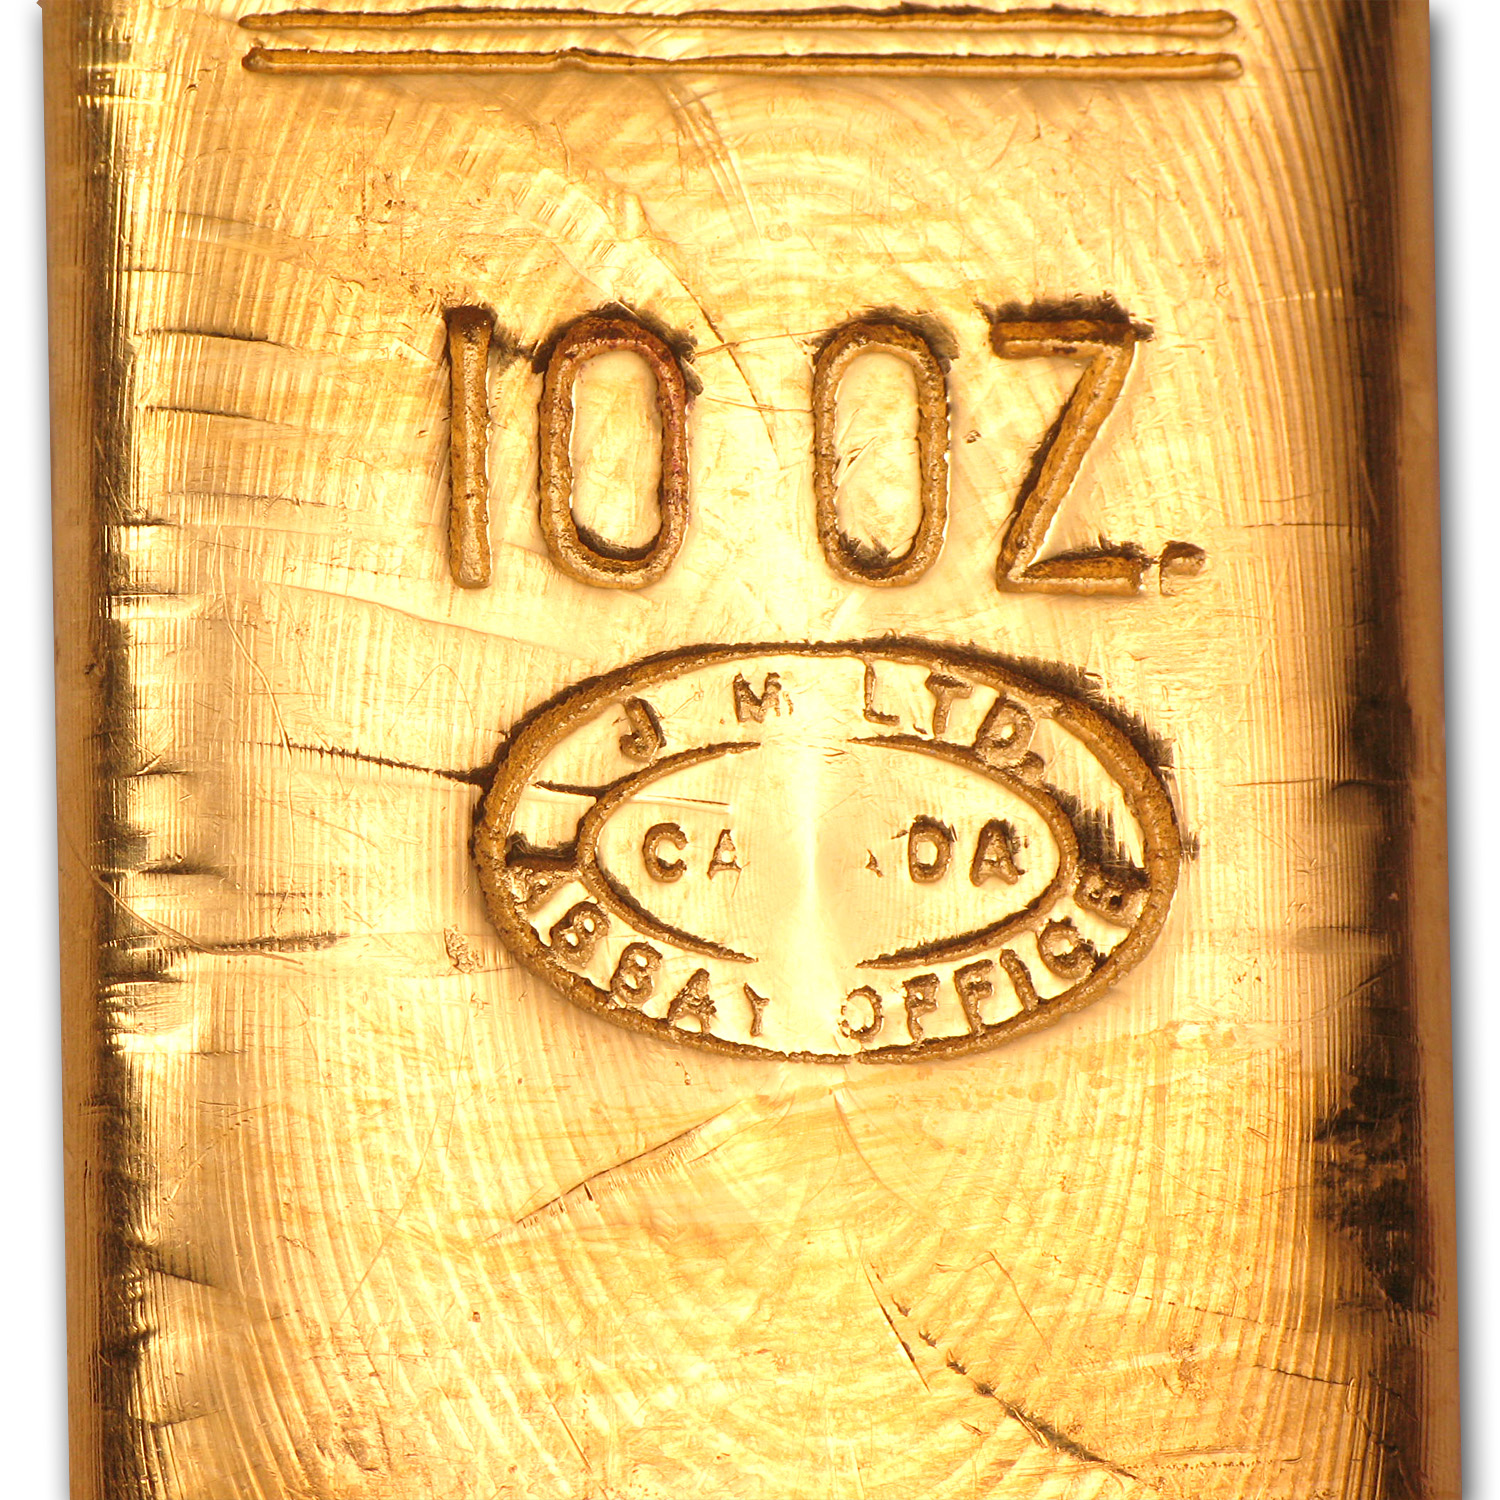 10 oz Gold Bar - Johnson Matthey (Bache)